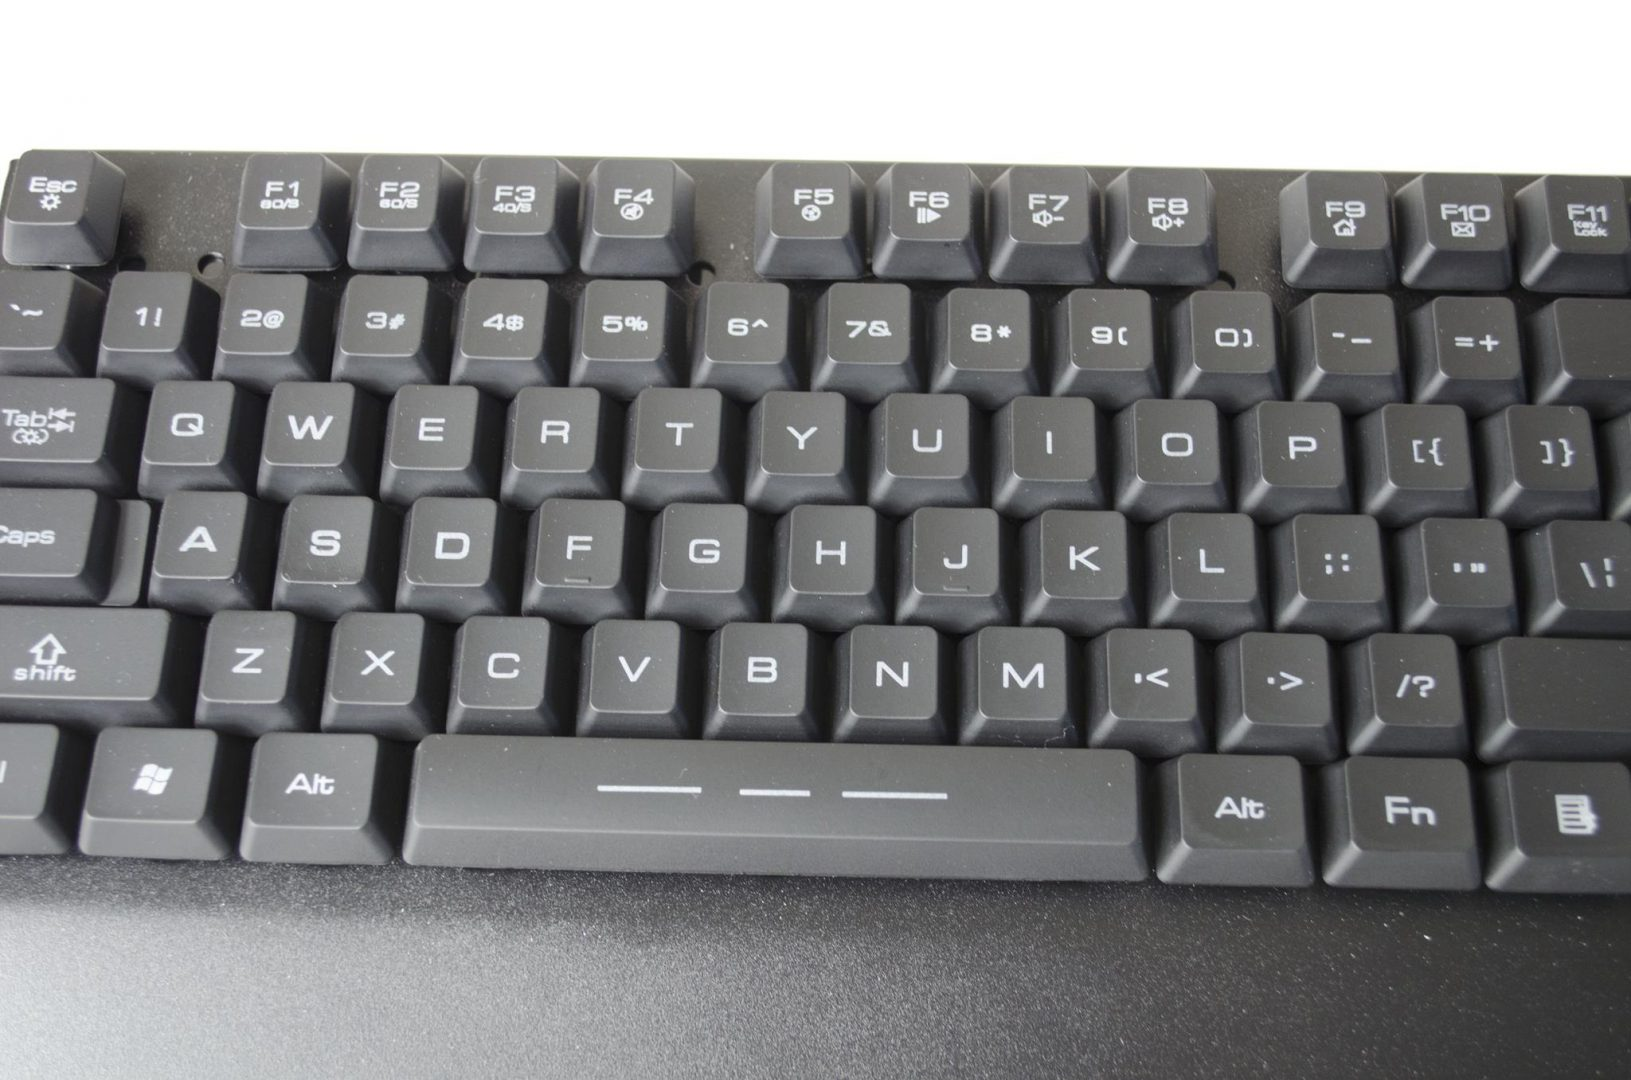 x2 mirage gaming keyboard review_4